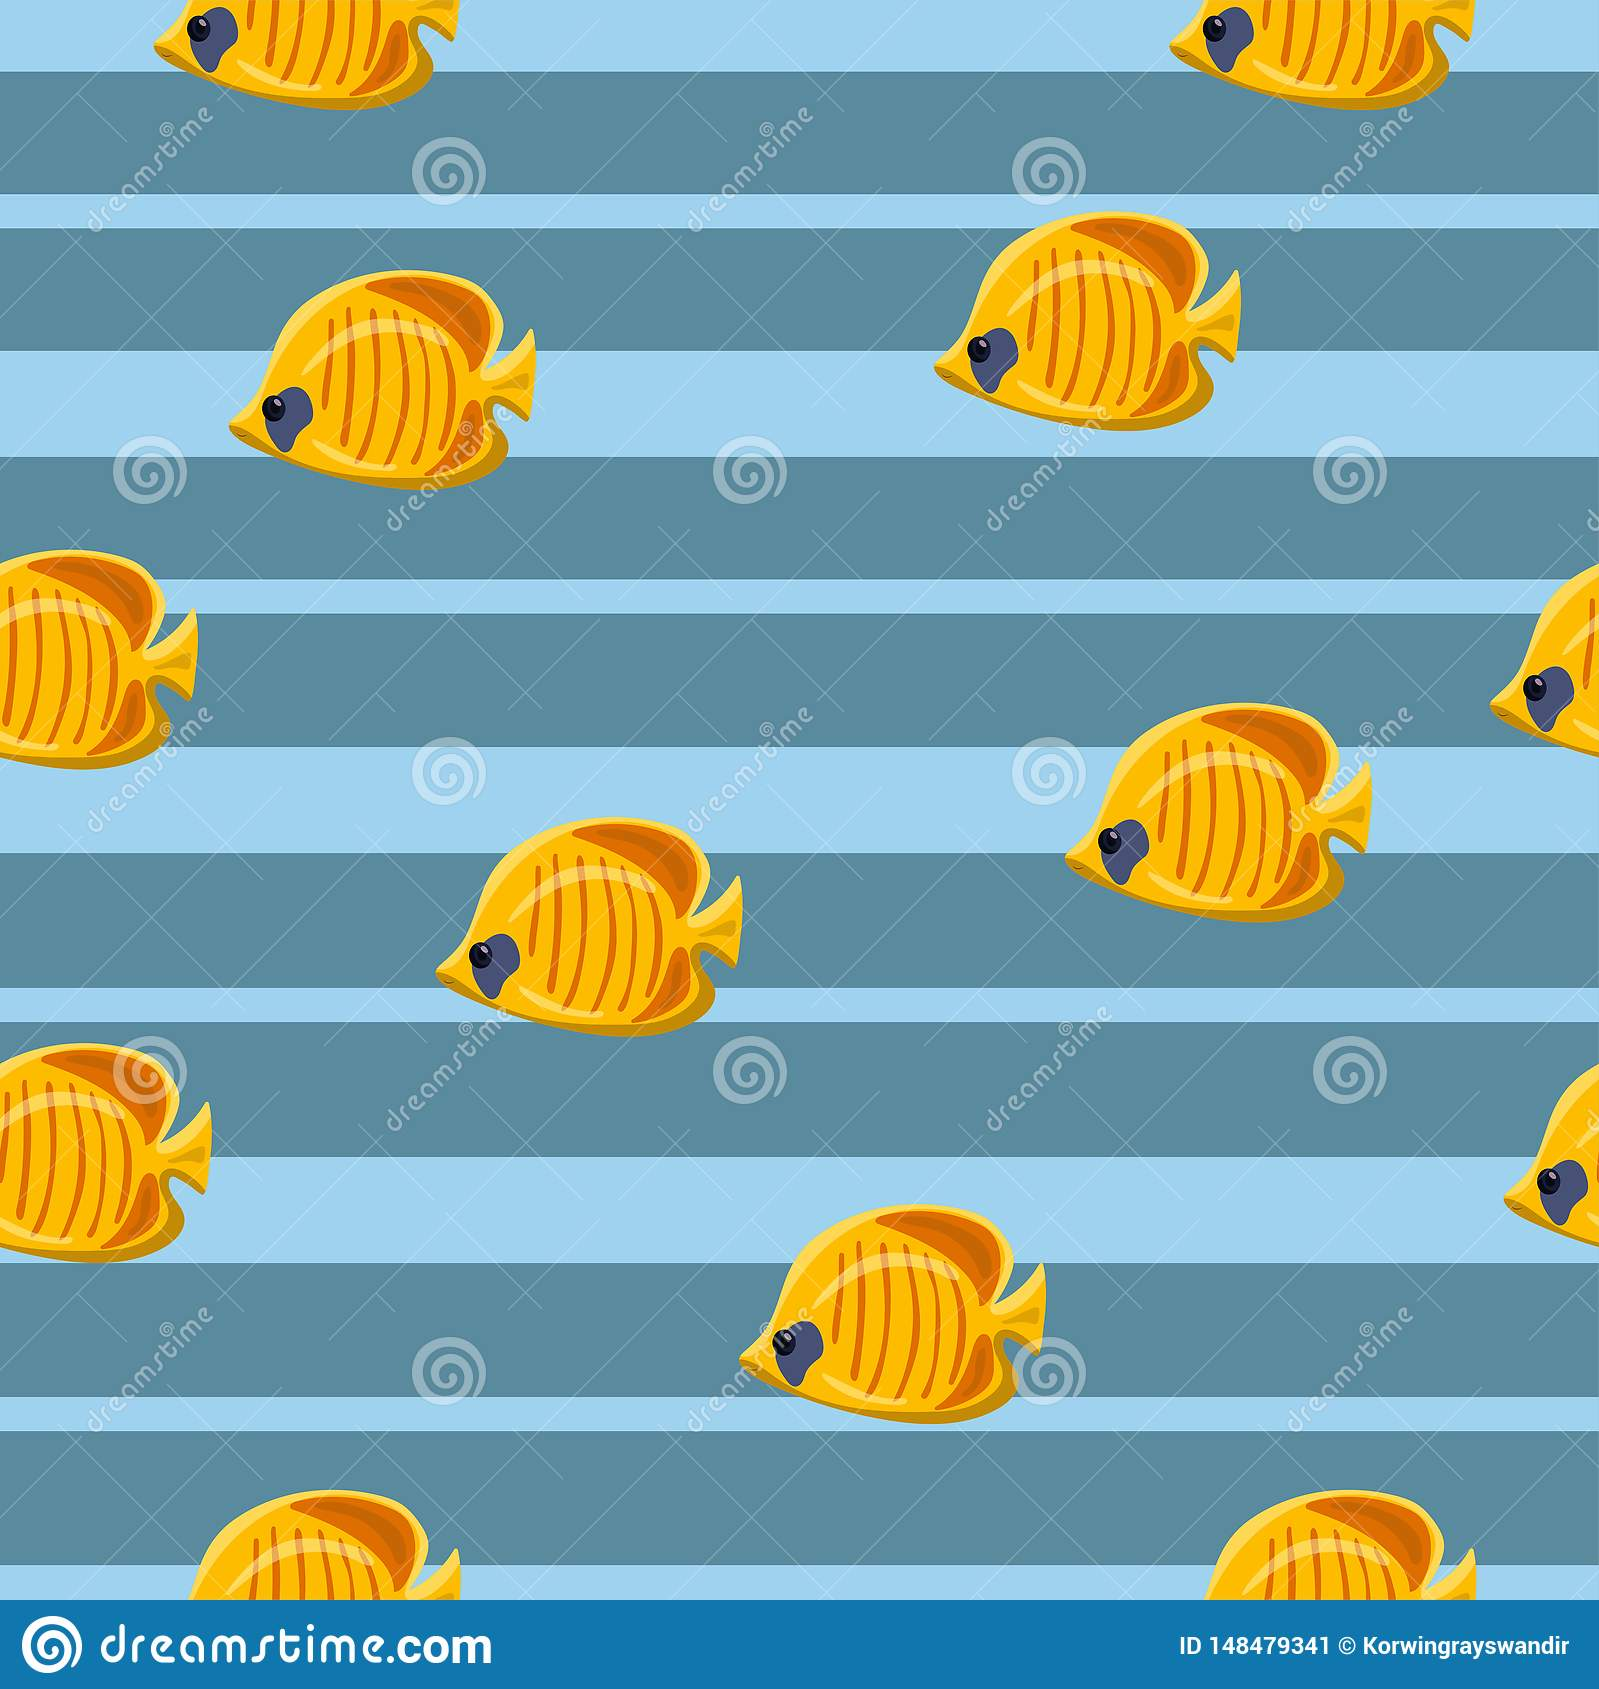 Seamless pattern with yellow tropical sea fishes on blue background. Vector illustration